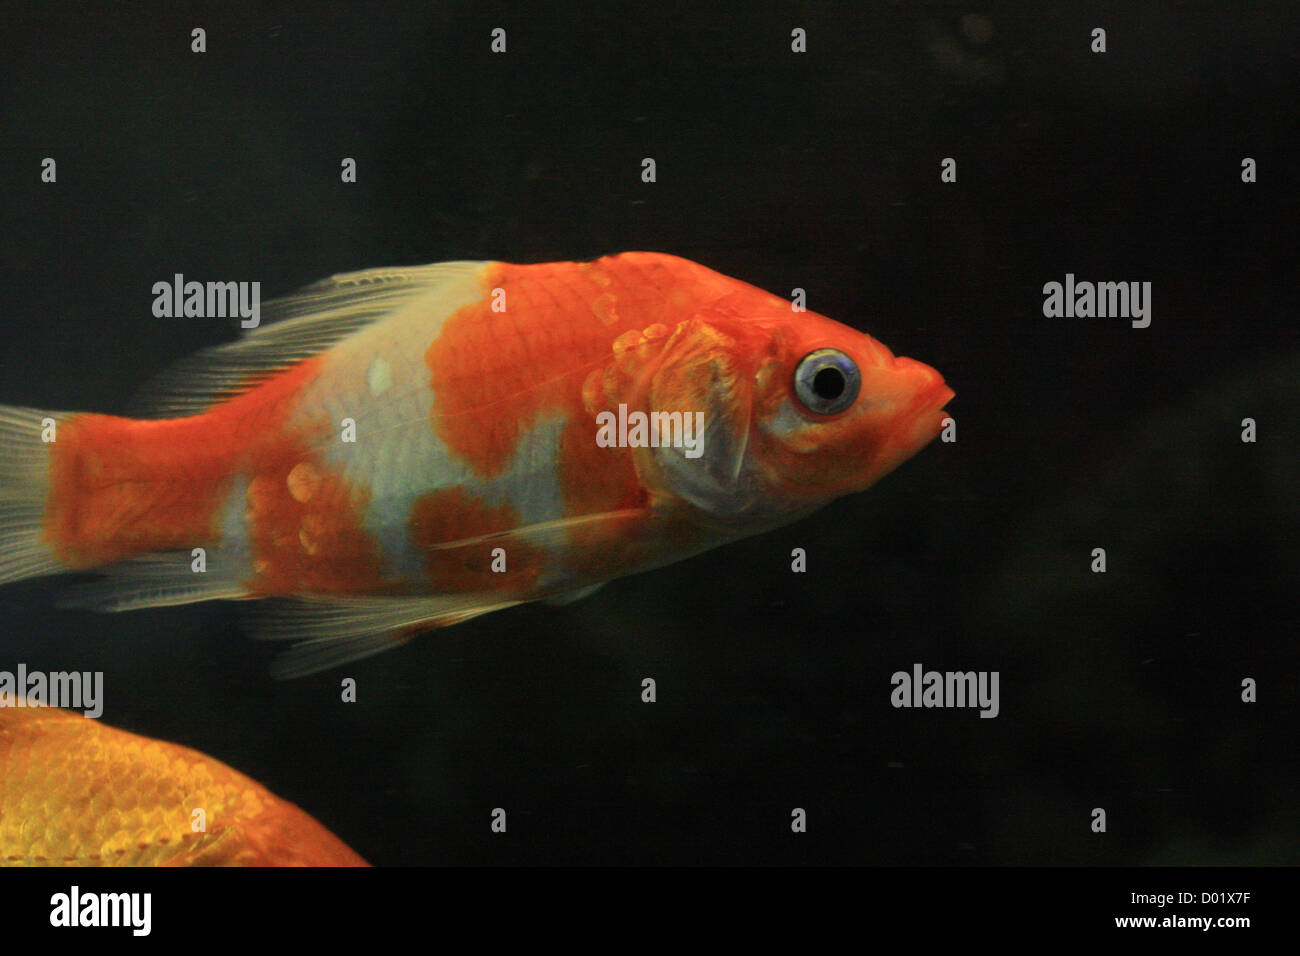 Freshwater aquarium fish buy - Freshwater Fish Aquarium Fish Tropical Fish Pictures Of Fish Fish Tanks